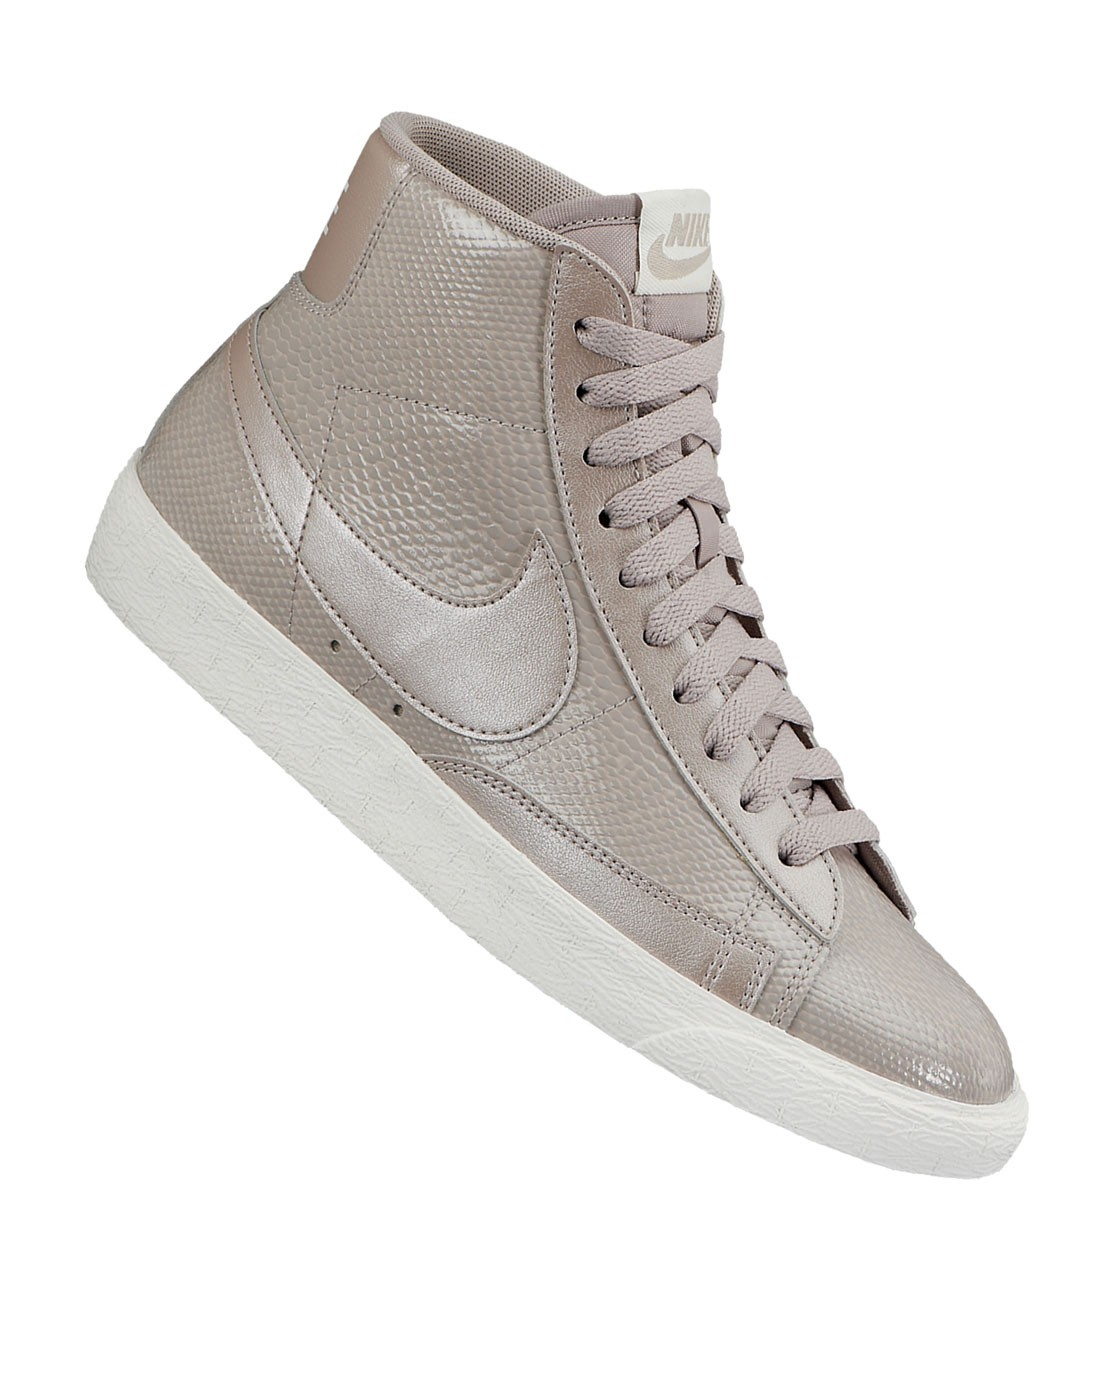 Nike WMNS Blazer Mid Leather Premium (Ltr Prm) 685225-100 Orewood Brown White Women's Shoe